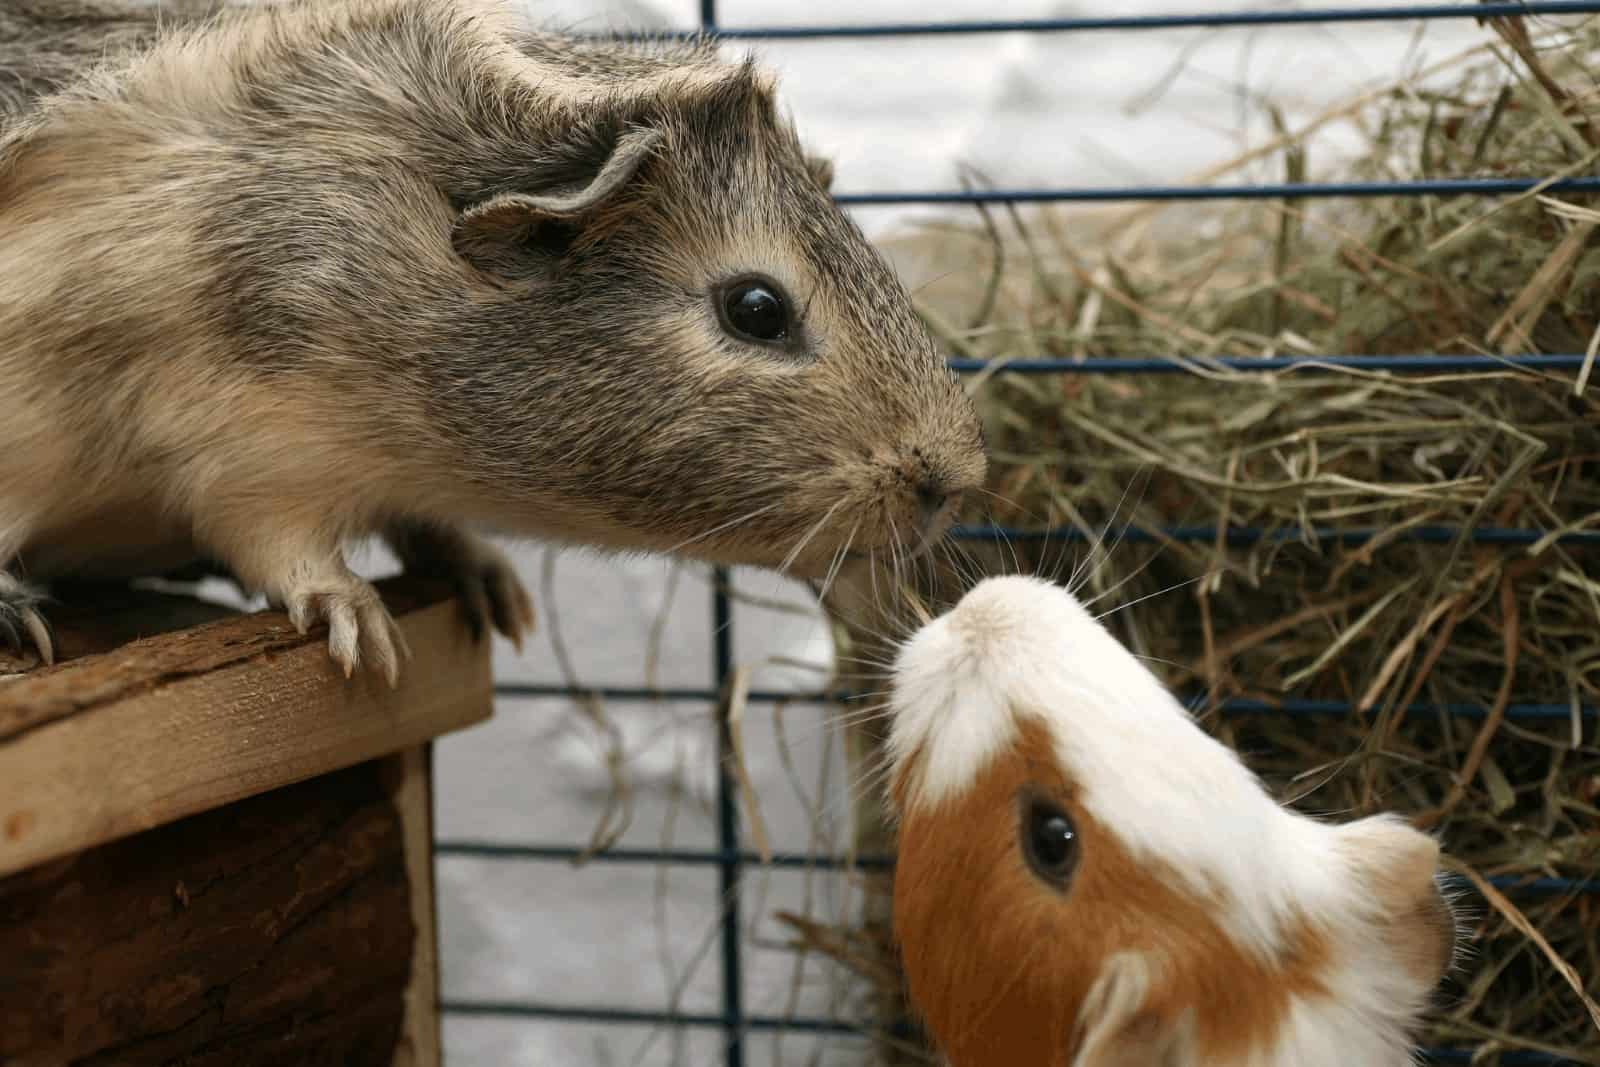 two guinea pigs smelling each other and seems fighting: why do guinea pigs bite each other?